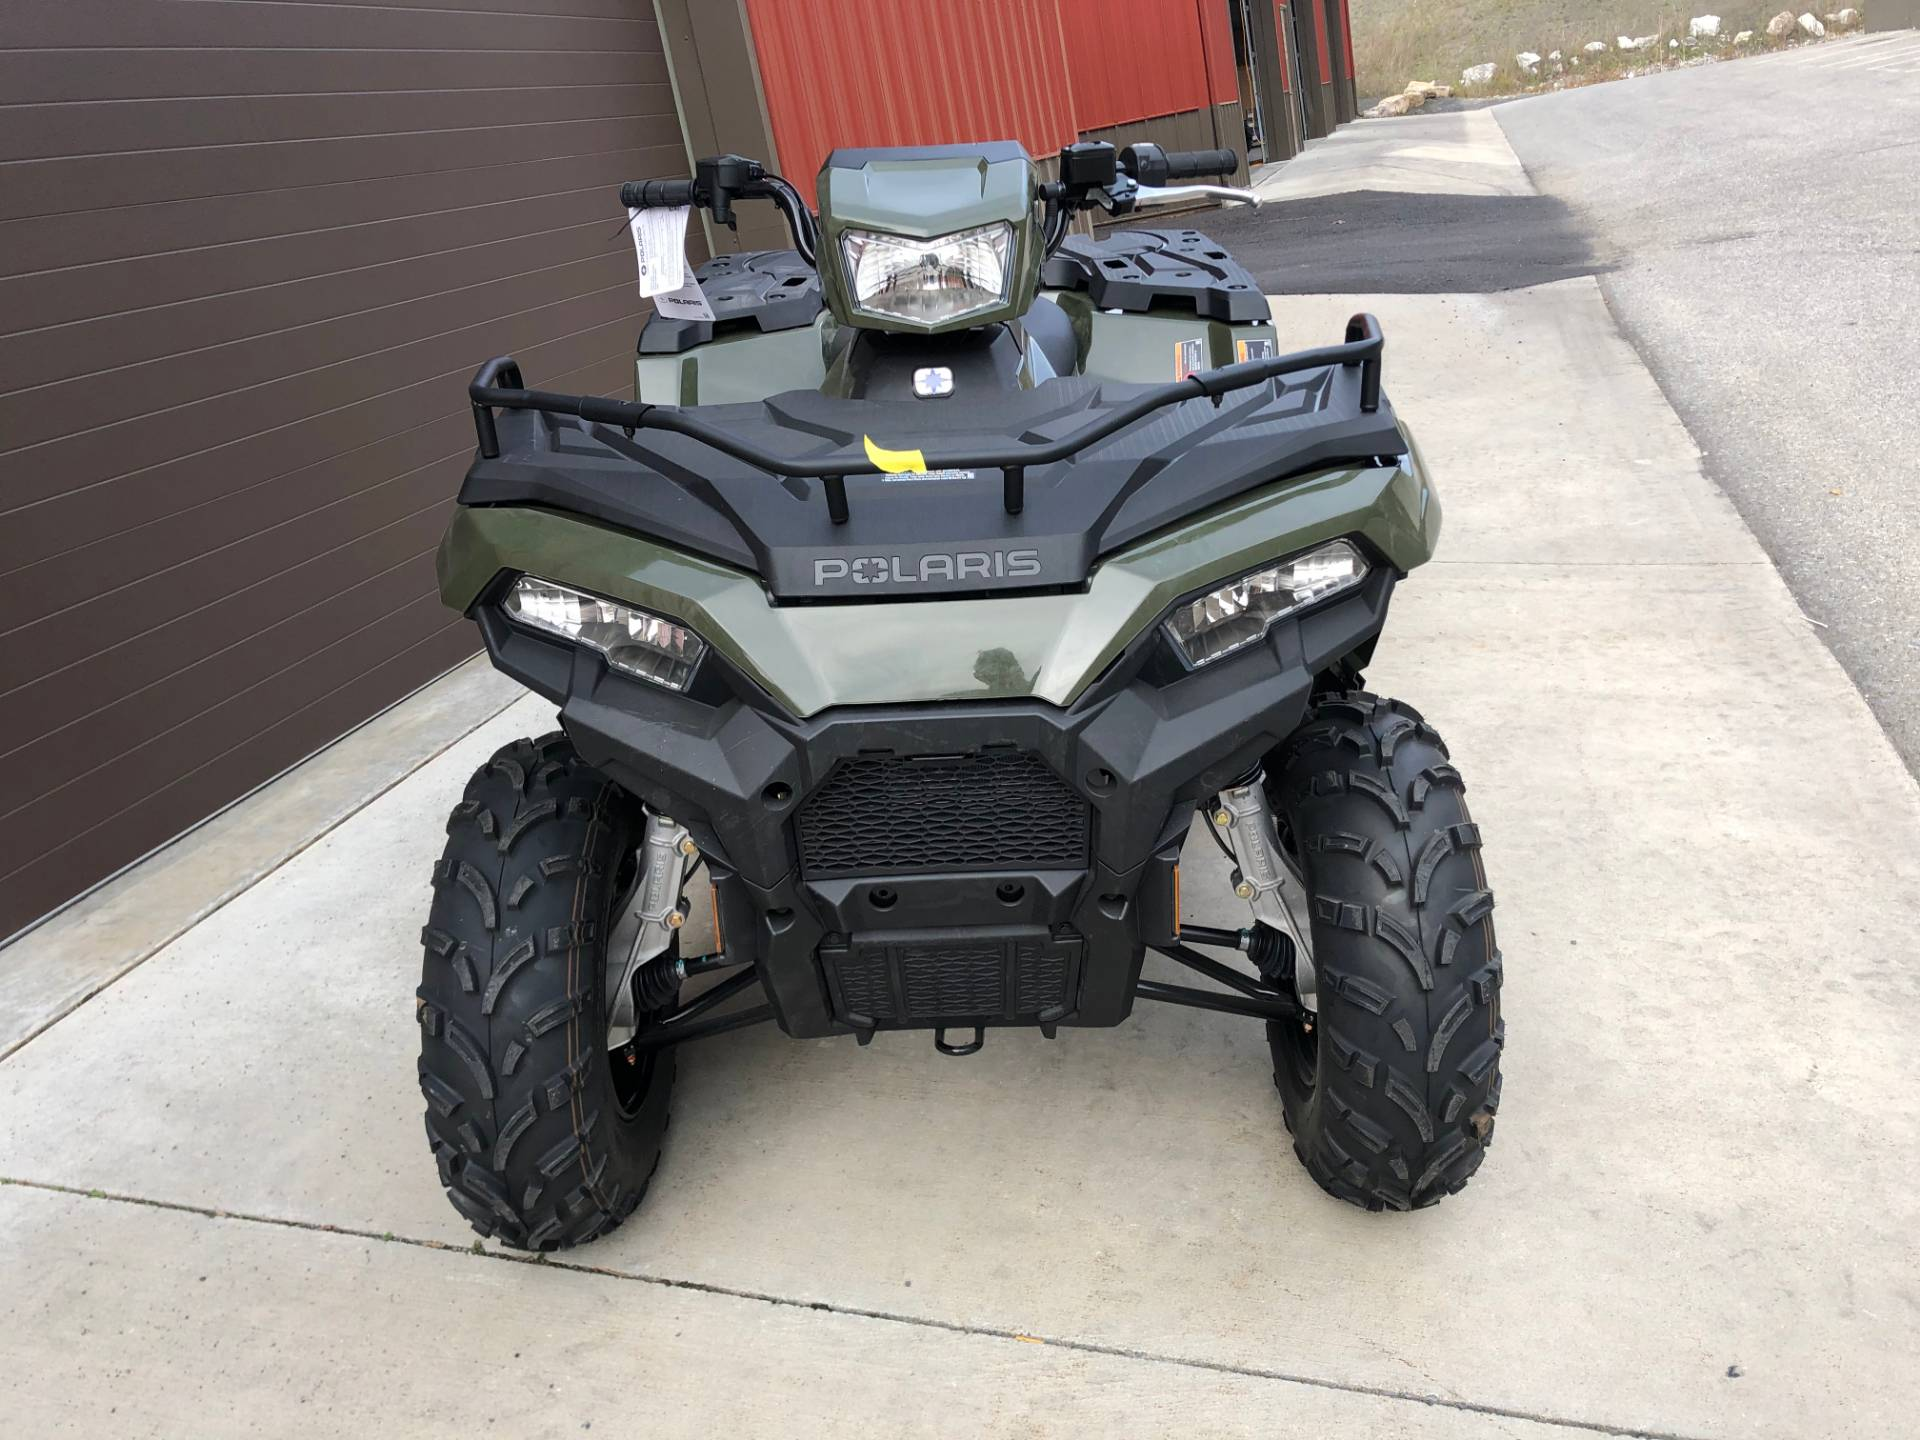 2021 Polaris Sportsman 450 H.O. in Tyrone, Pennsylvania - Photo 3